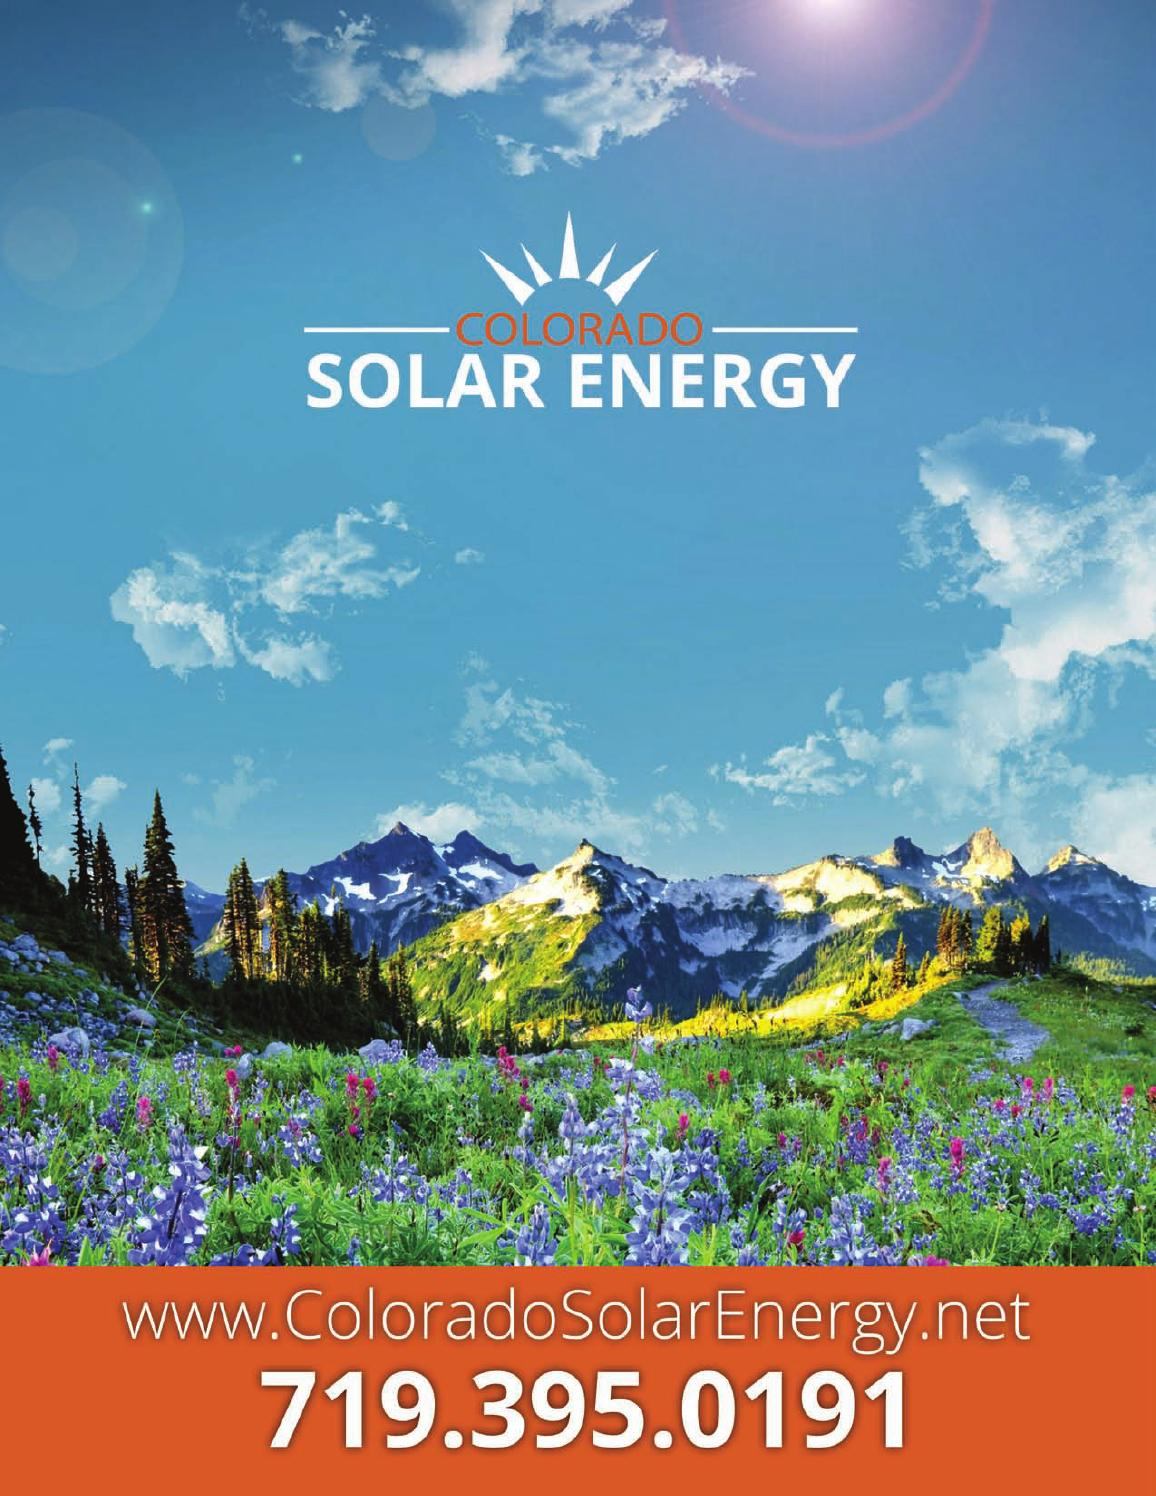 Colorado Solar Energy Catalog By Crops315 Issuu Line Diagram 4100 Watt Pv System Using Enphase M 210 Inverters Http